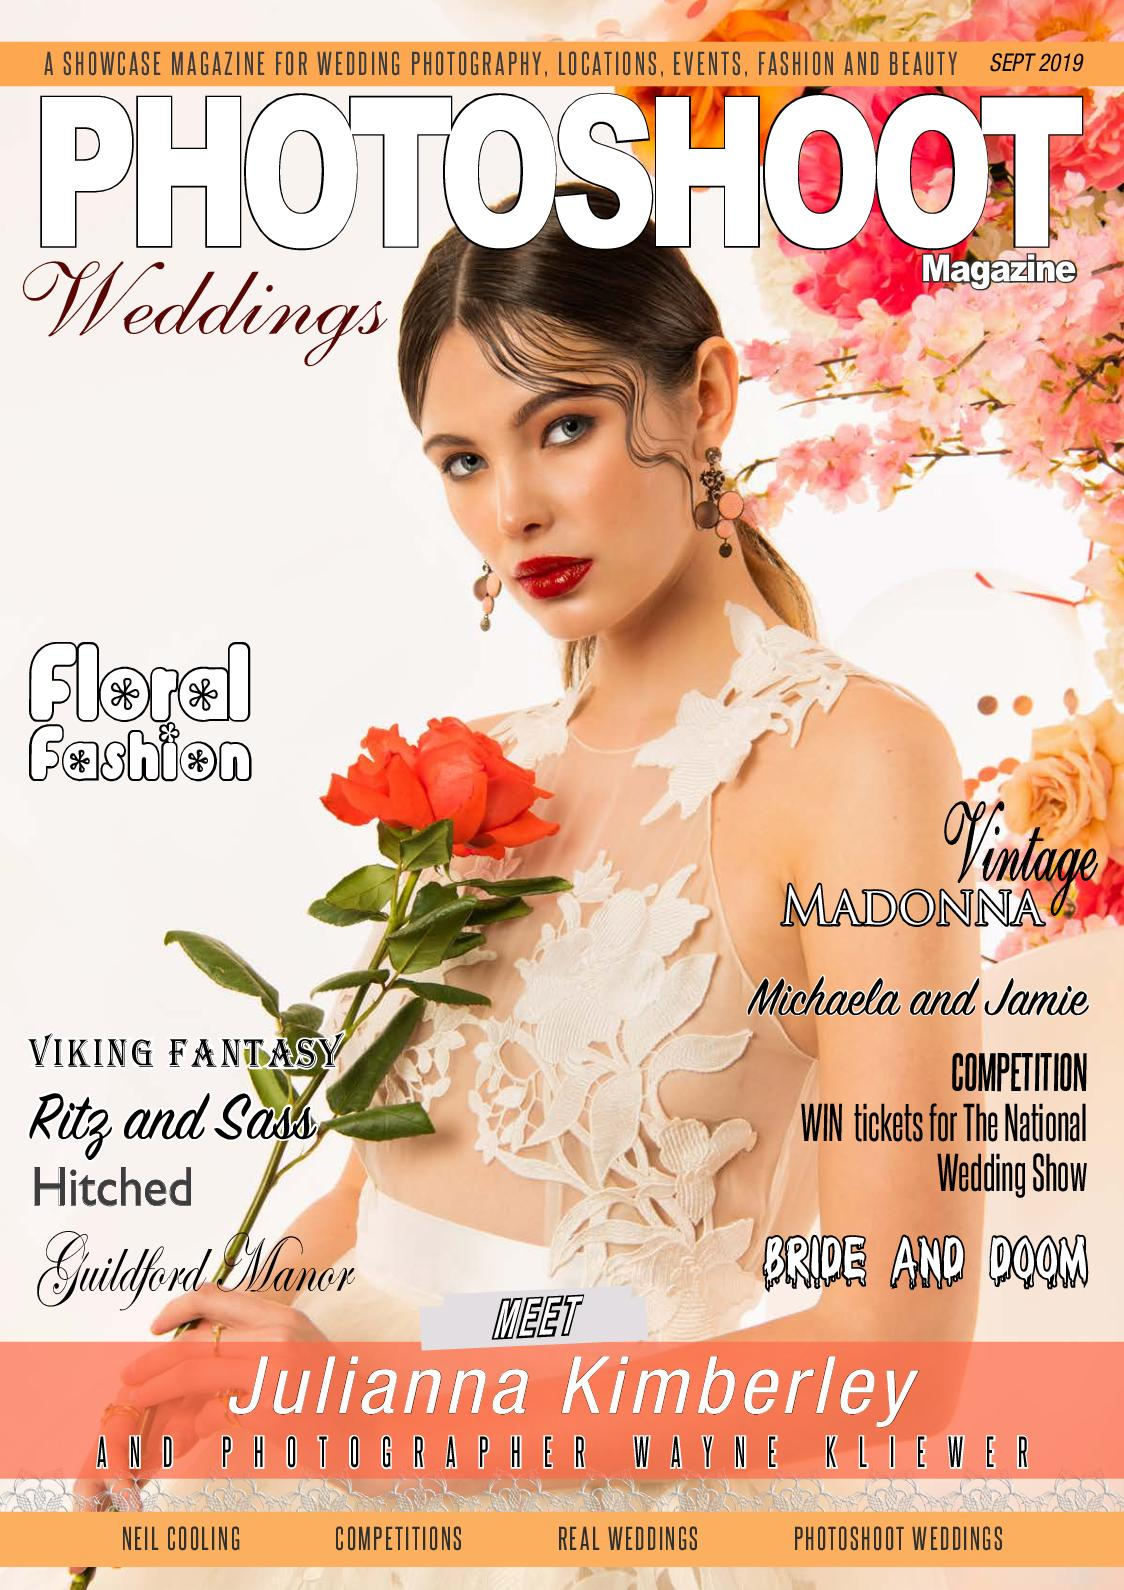 PHOTOSHOOT Weddings Themed Special Sept 2019